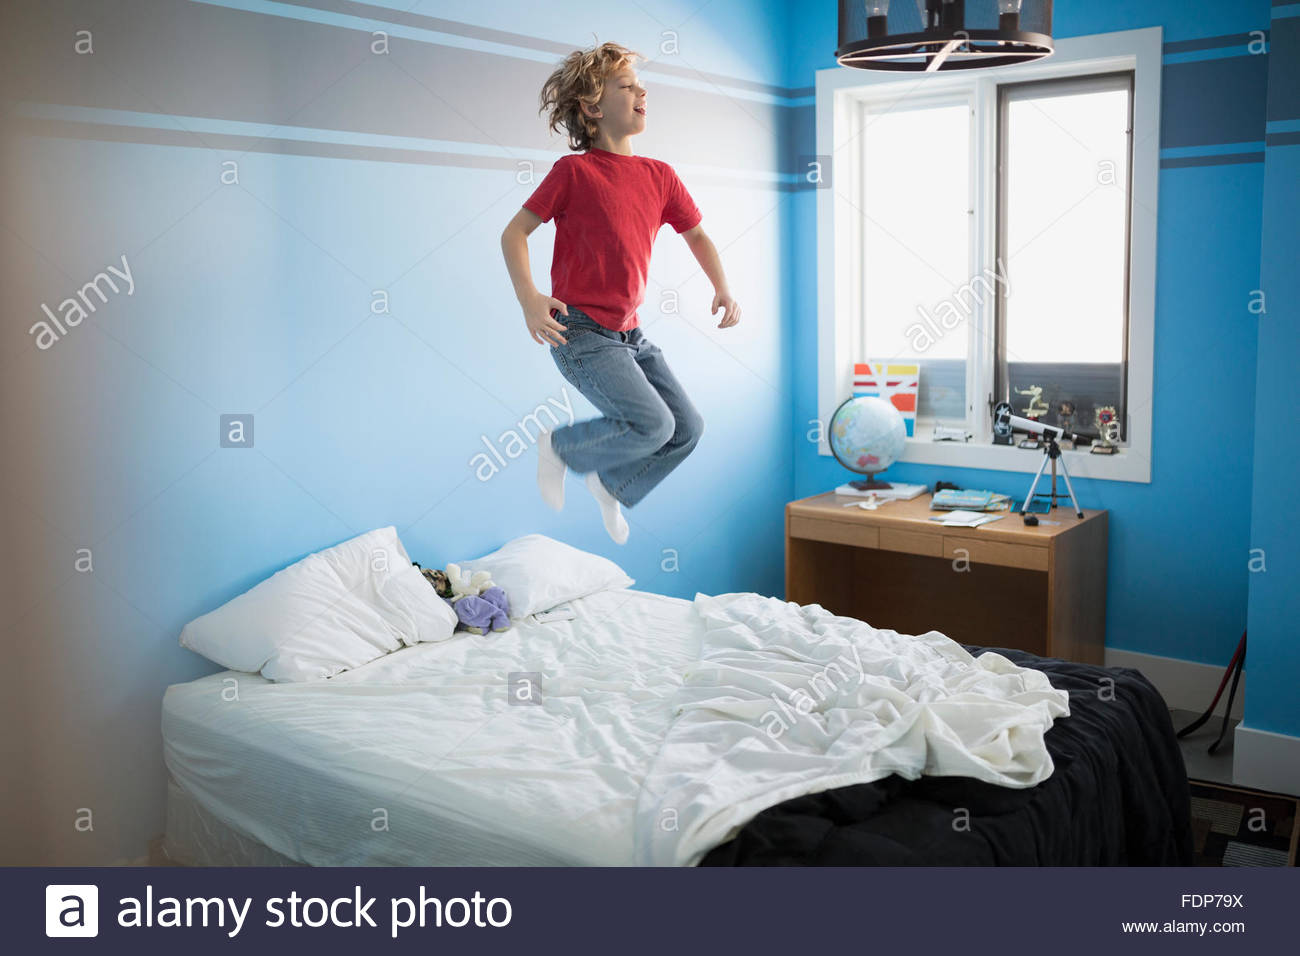 Boy jumping on bed - Stock Image